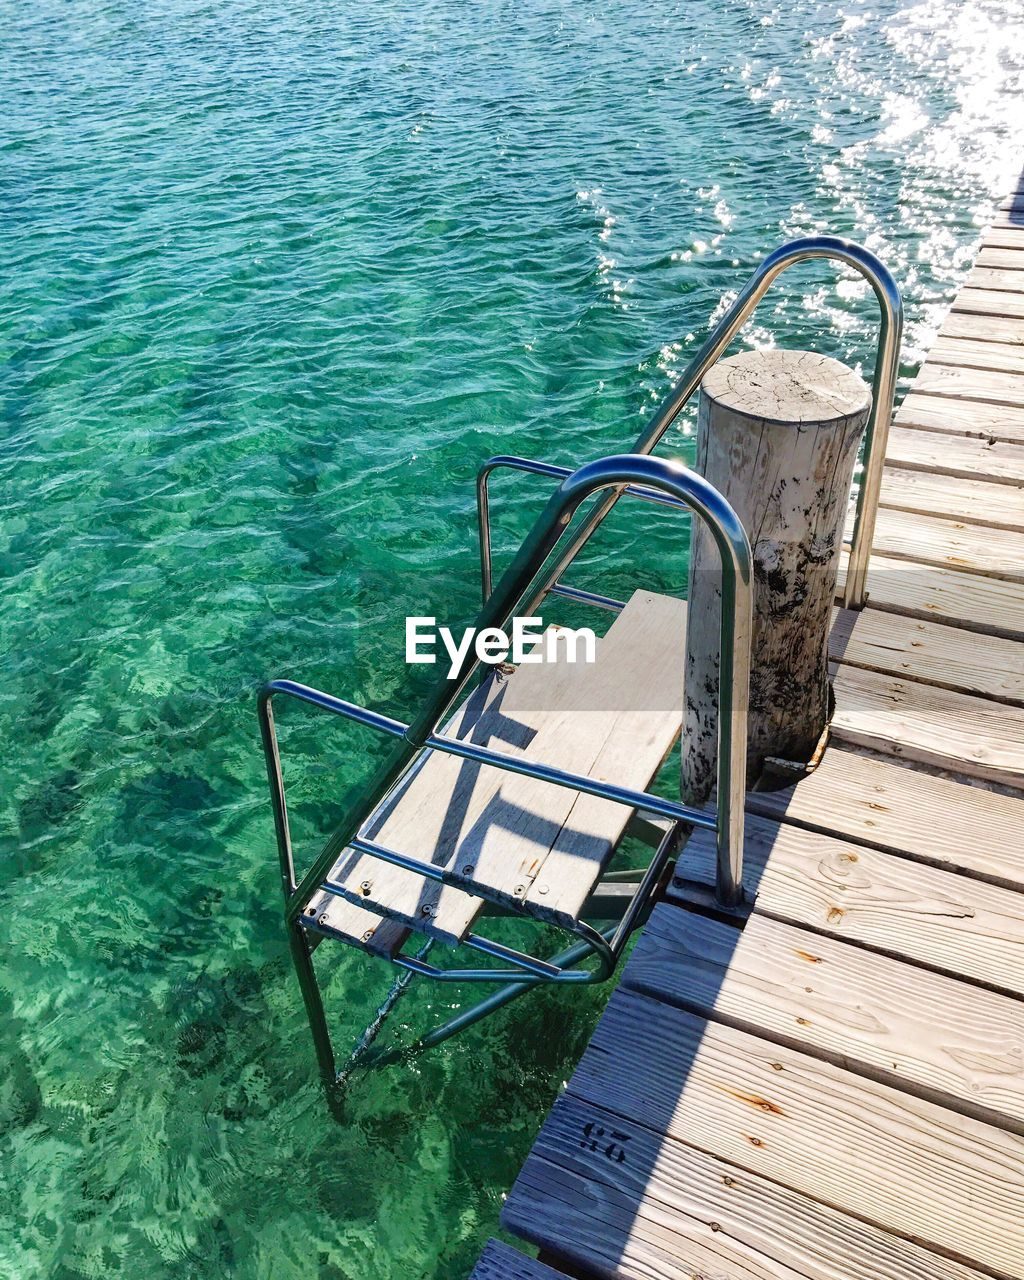 water, nature, high angle view, no people, pool, swimming pool, seat, absence, day, wood - material, railing, tranquility, sunlight, ladder, chair, sea, staircase, outdoors, pier, turquoise colored